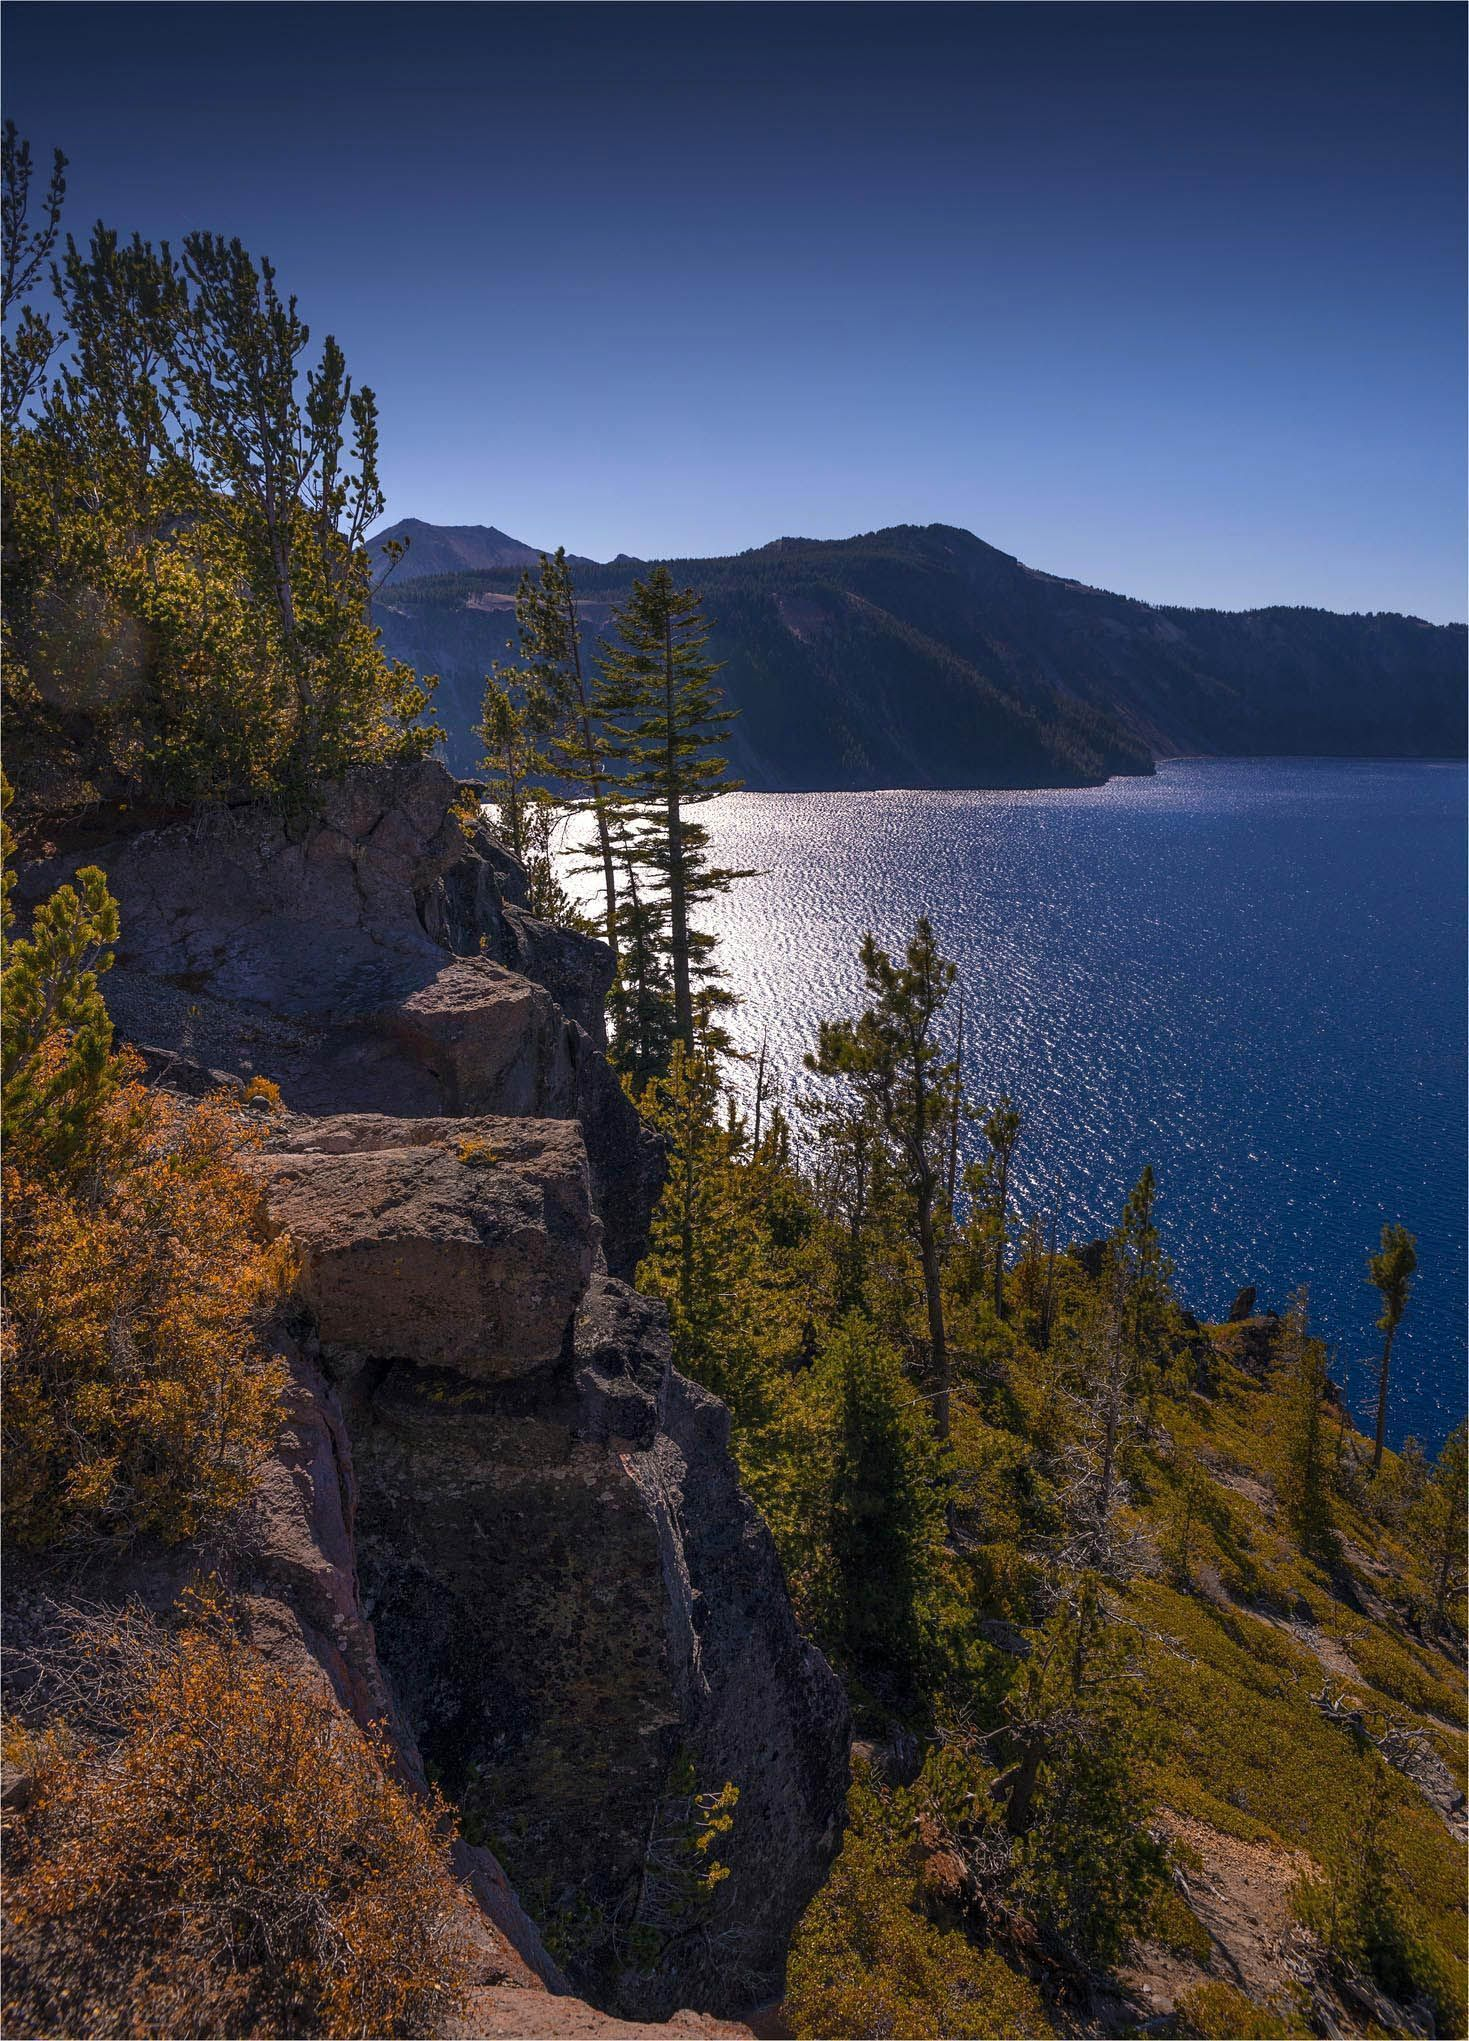 The Ultimate Overview to Crater Lake National Park #craterlakenationalpark Places to visit in where to stay near crater lake national park only on this page #craterlakenationalpark The Ultimate Overview to Crater Lake National Park #craterlakenationalpark Places to visit in where to stay near crater lake national park only on this page #craterlakenationalpark The Ultimate Overview to Crater Lake National Park #craterlakenationalpark Places to visit in where to stay near crater lake national park #craterlakeoregon